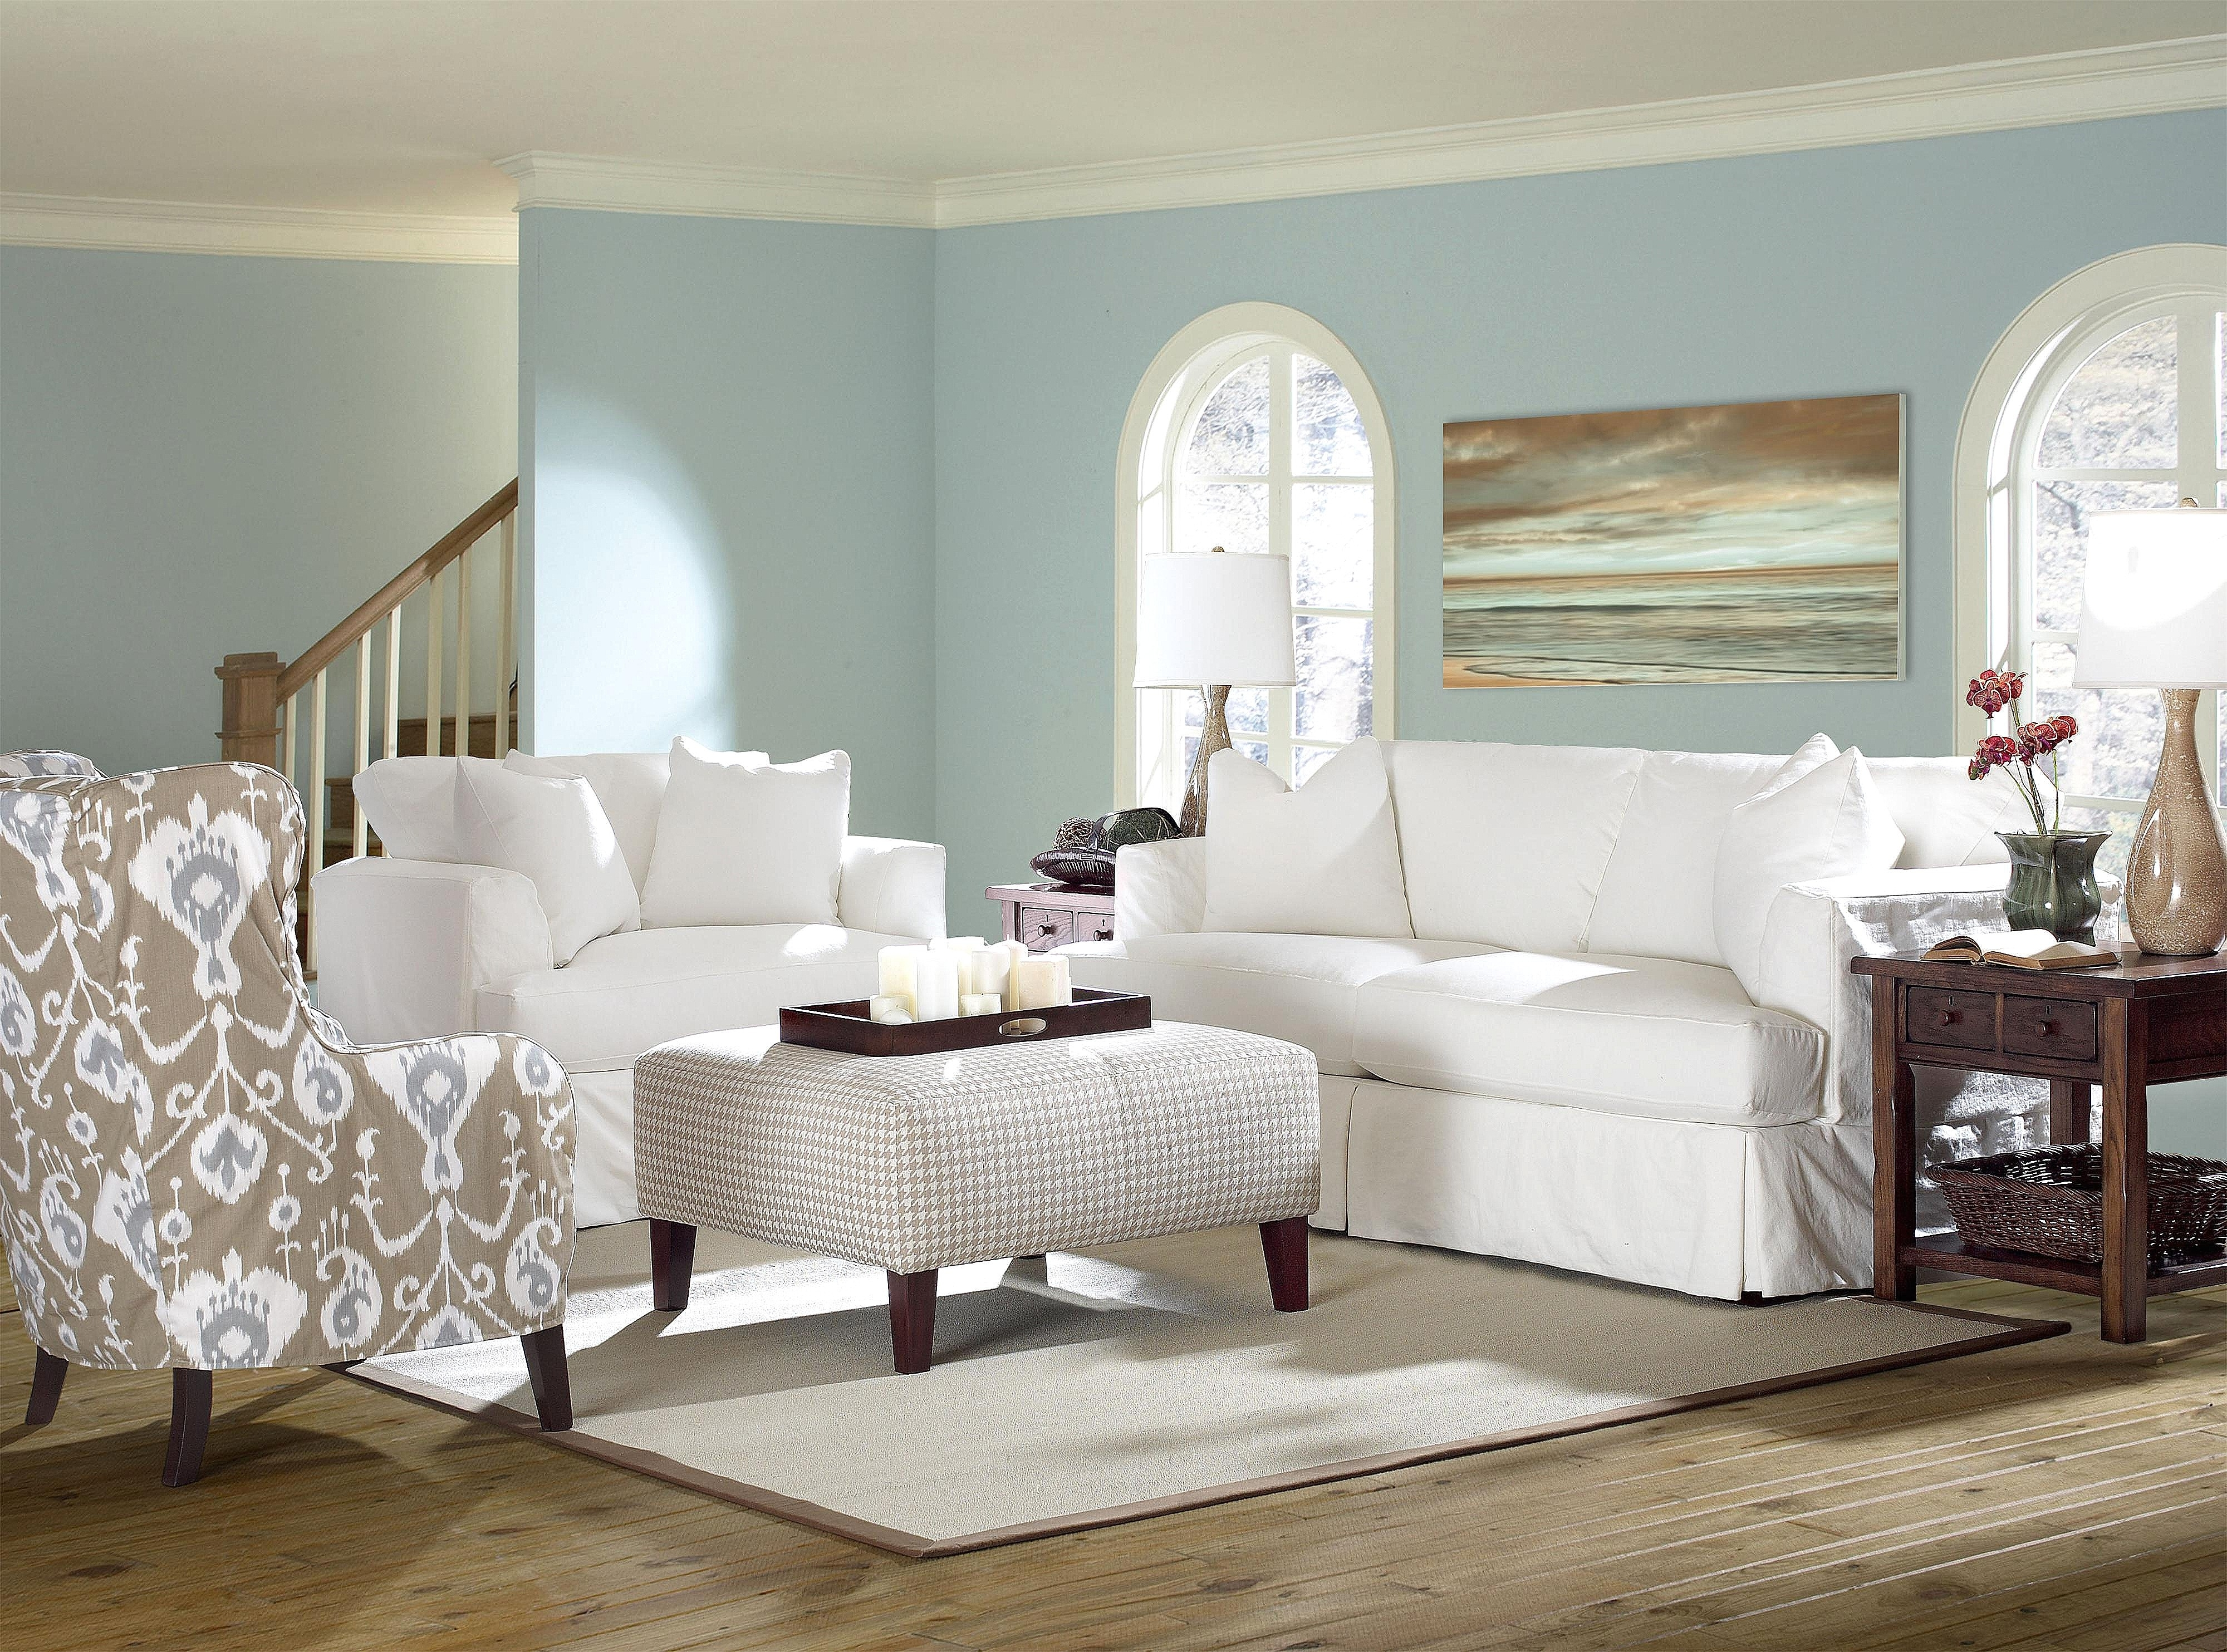 Widely Used Oversized Sofa Chairs Regarding New Oversized Chairs For Living Room (39 Photos (View 20 of 20)